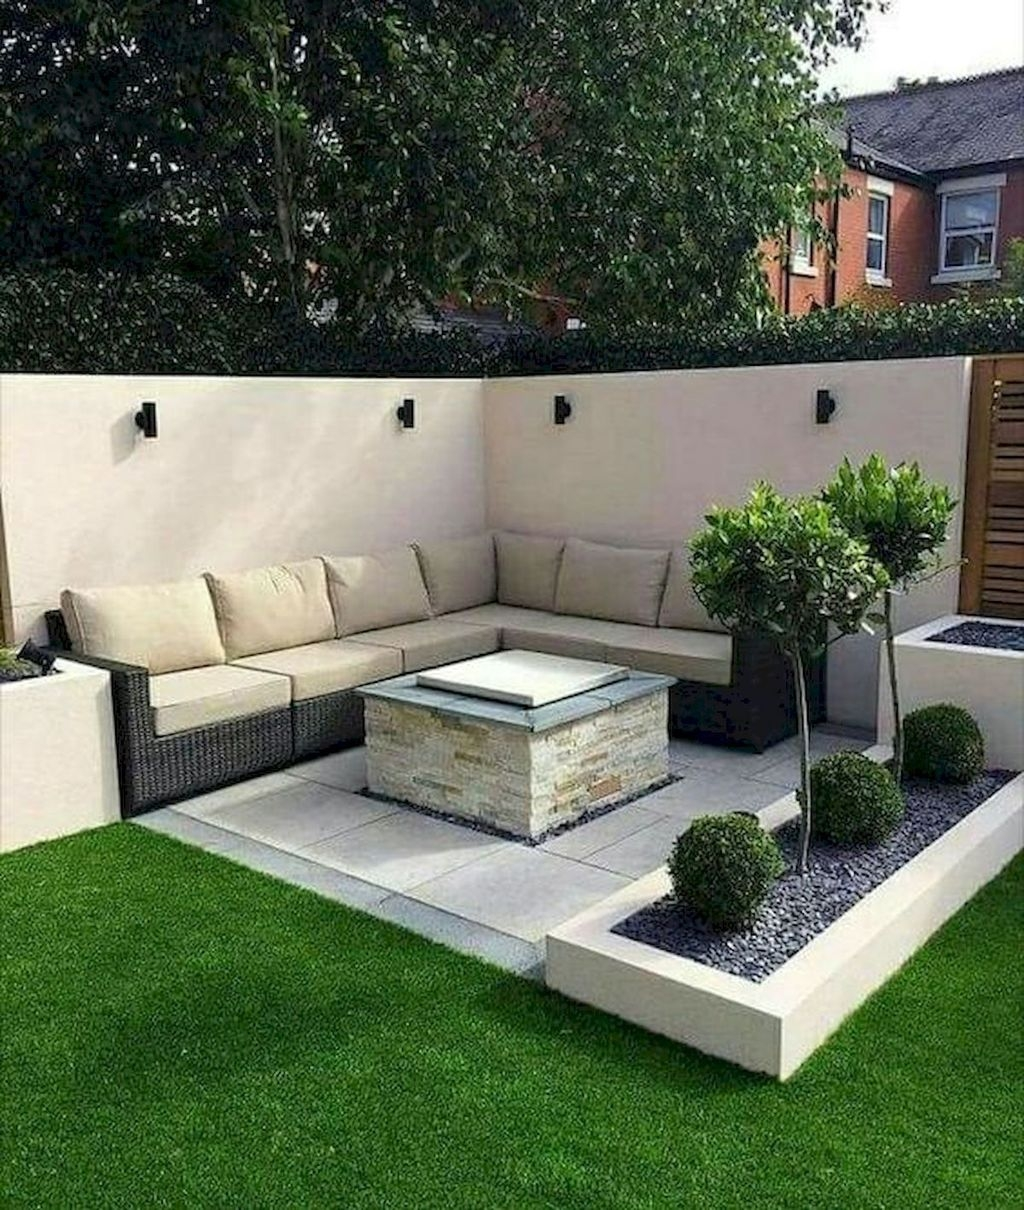 Awesome Modern Garden Architecture Design Ideas 15